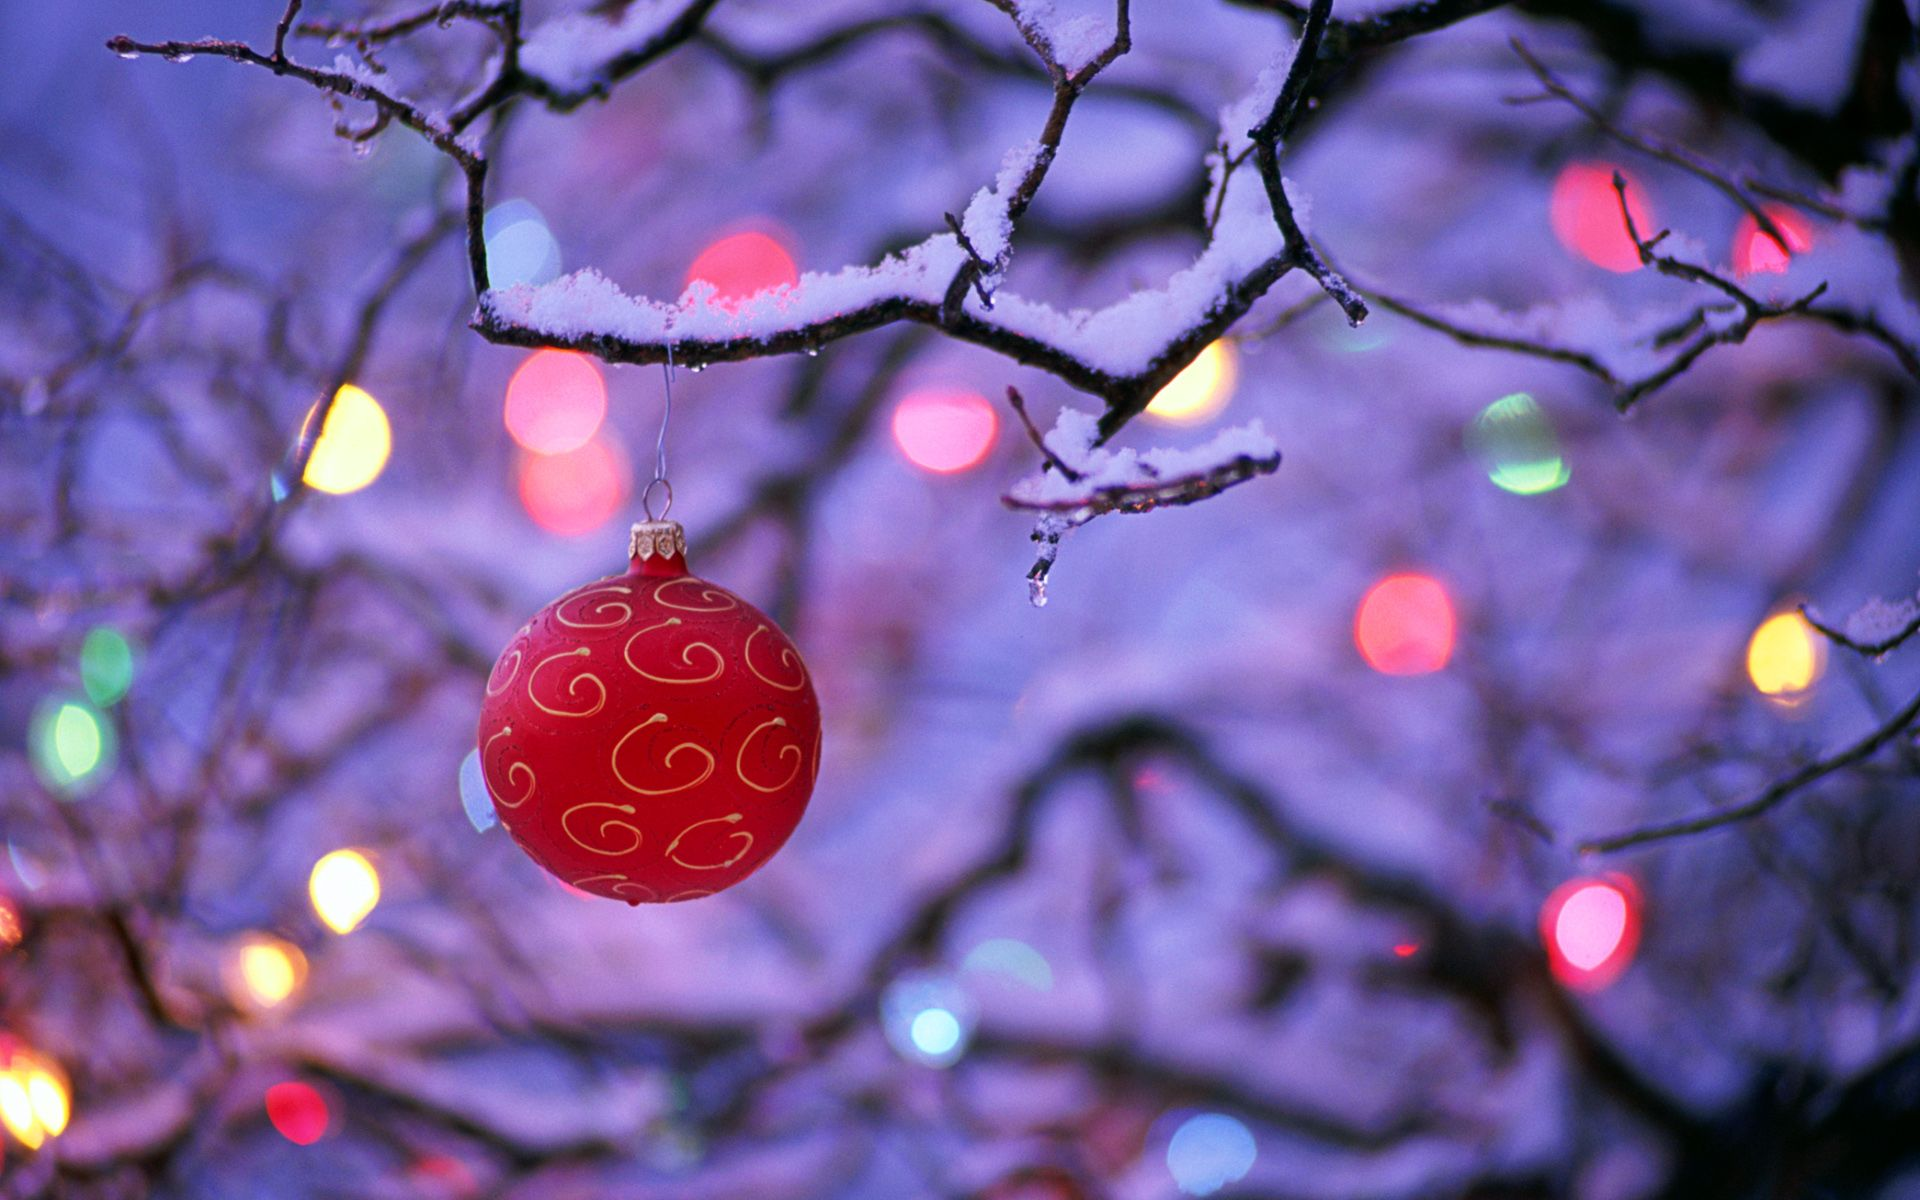 Winter Christmas Wallpaper Picture Amazing Wallpapers